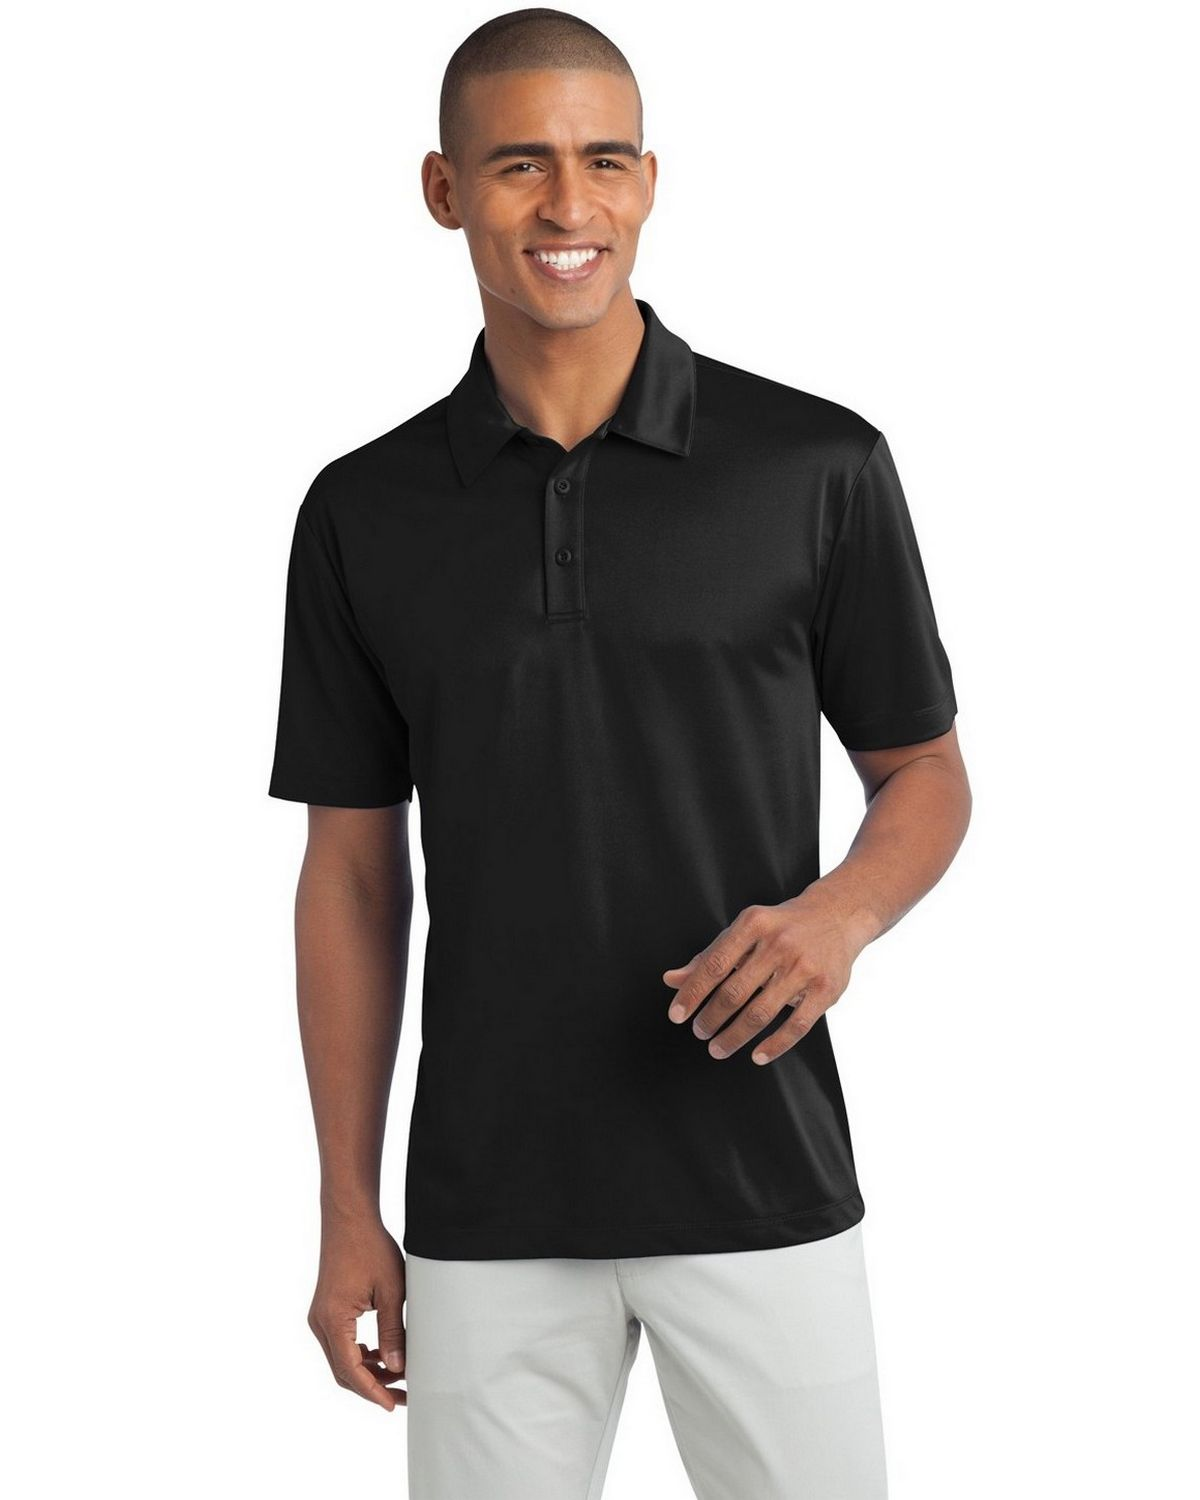 Port Authority TLK540 Men's Tall Silk Touch Performance Polo - Black - LT from Port Authority